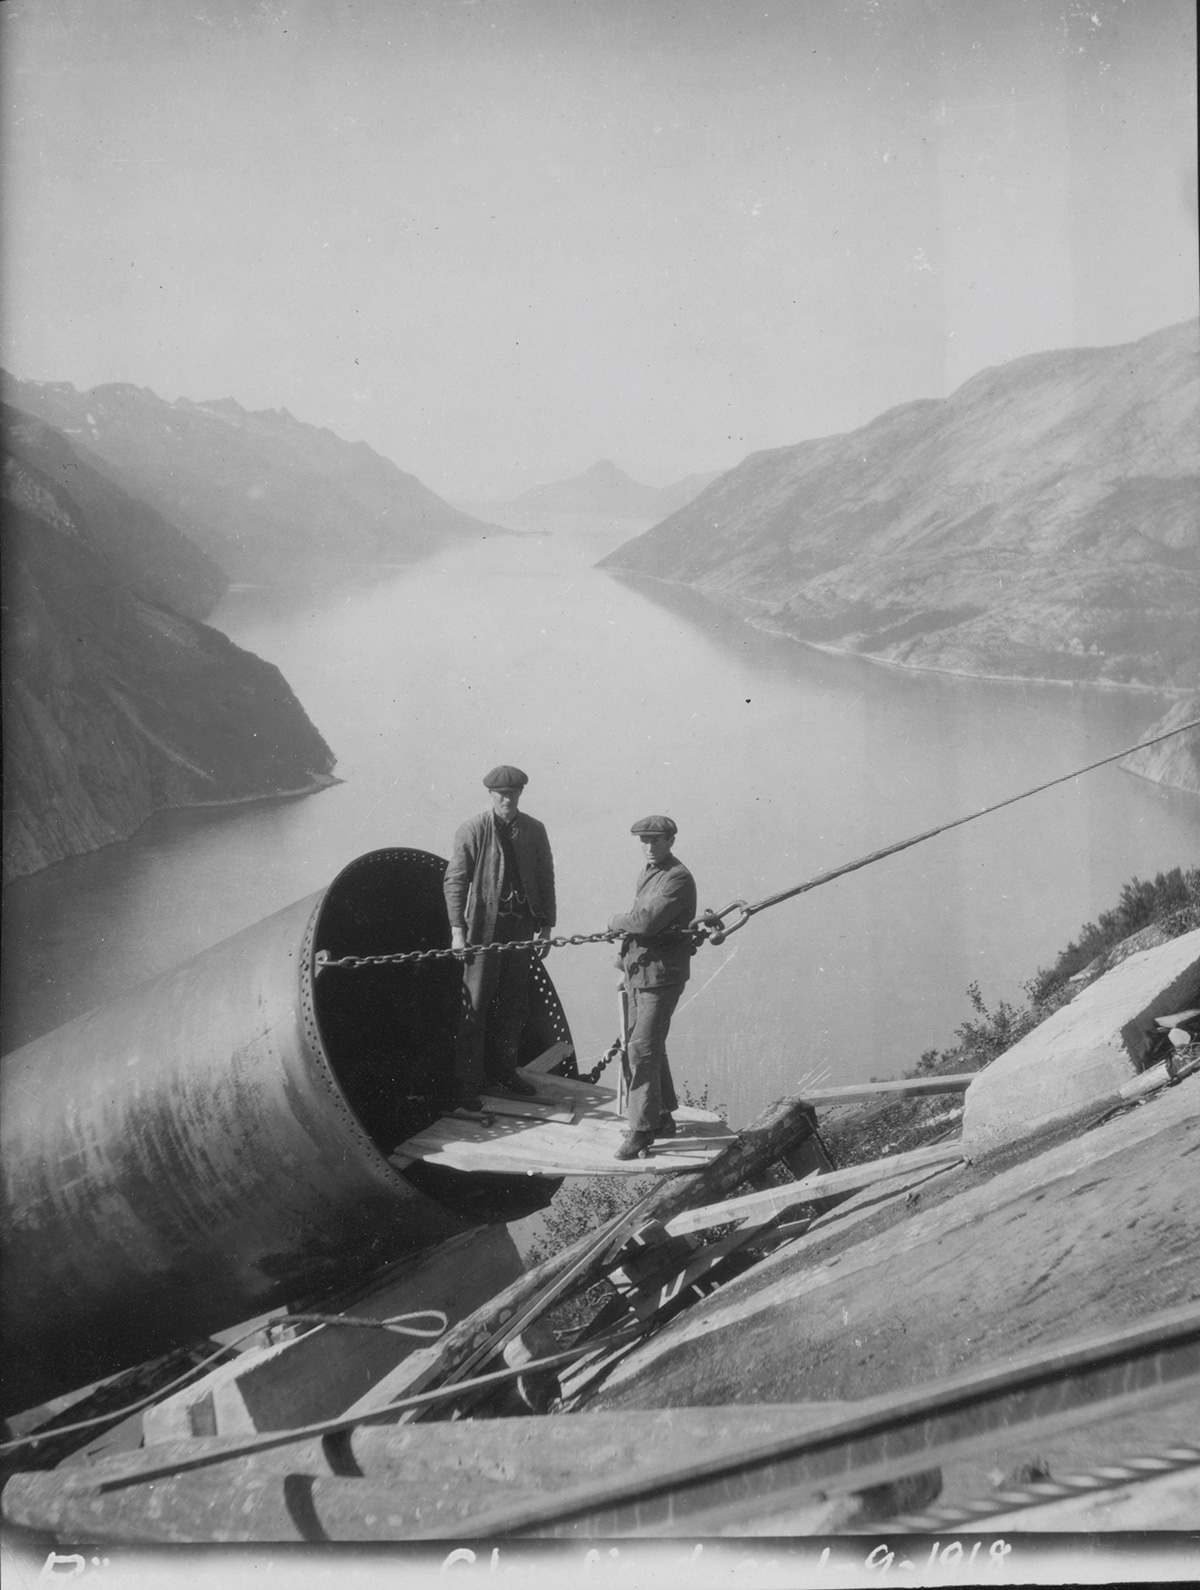 https://www.statkraft.com.pe/globalassets/1-statkraft-public/peru/media/loop-120-anos/construction-of-glomfjord-power-plant---noruega-1918.jpg